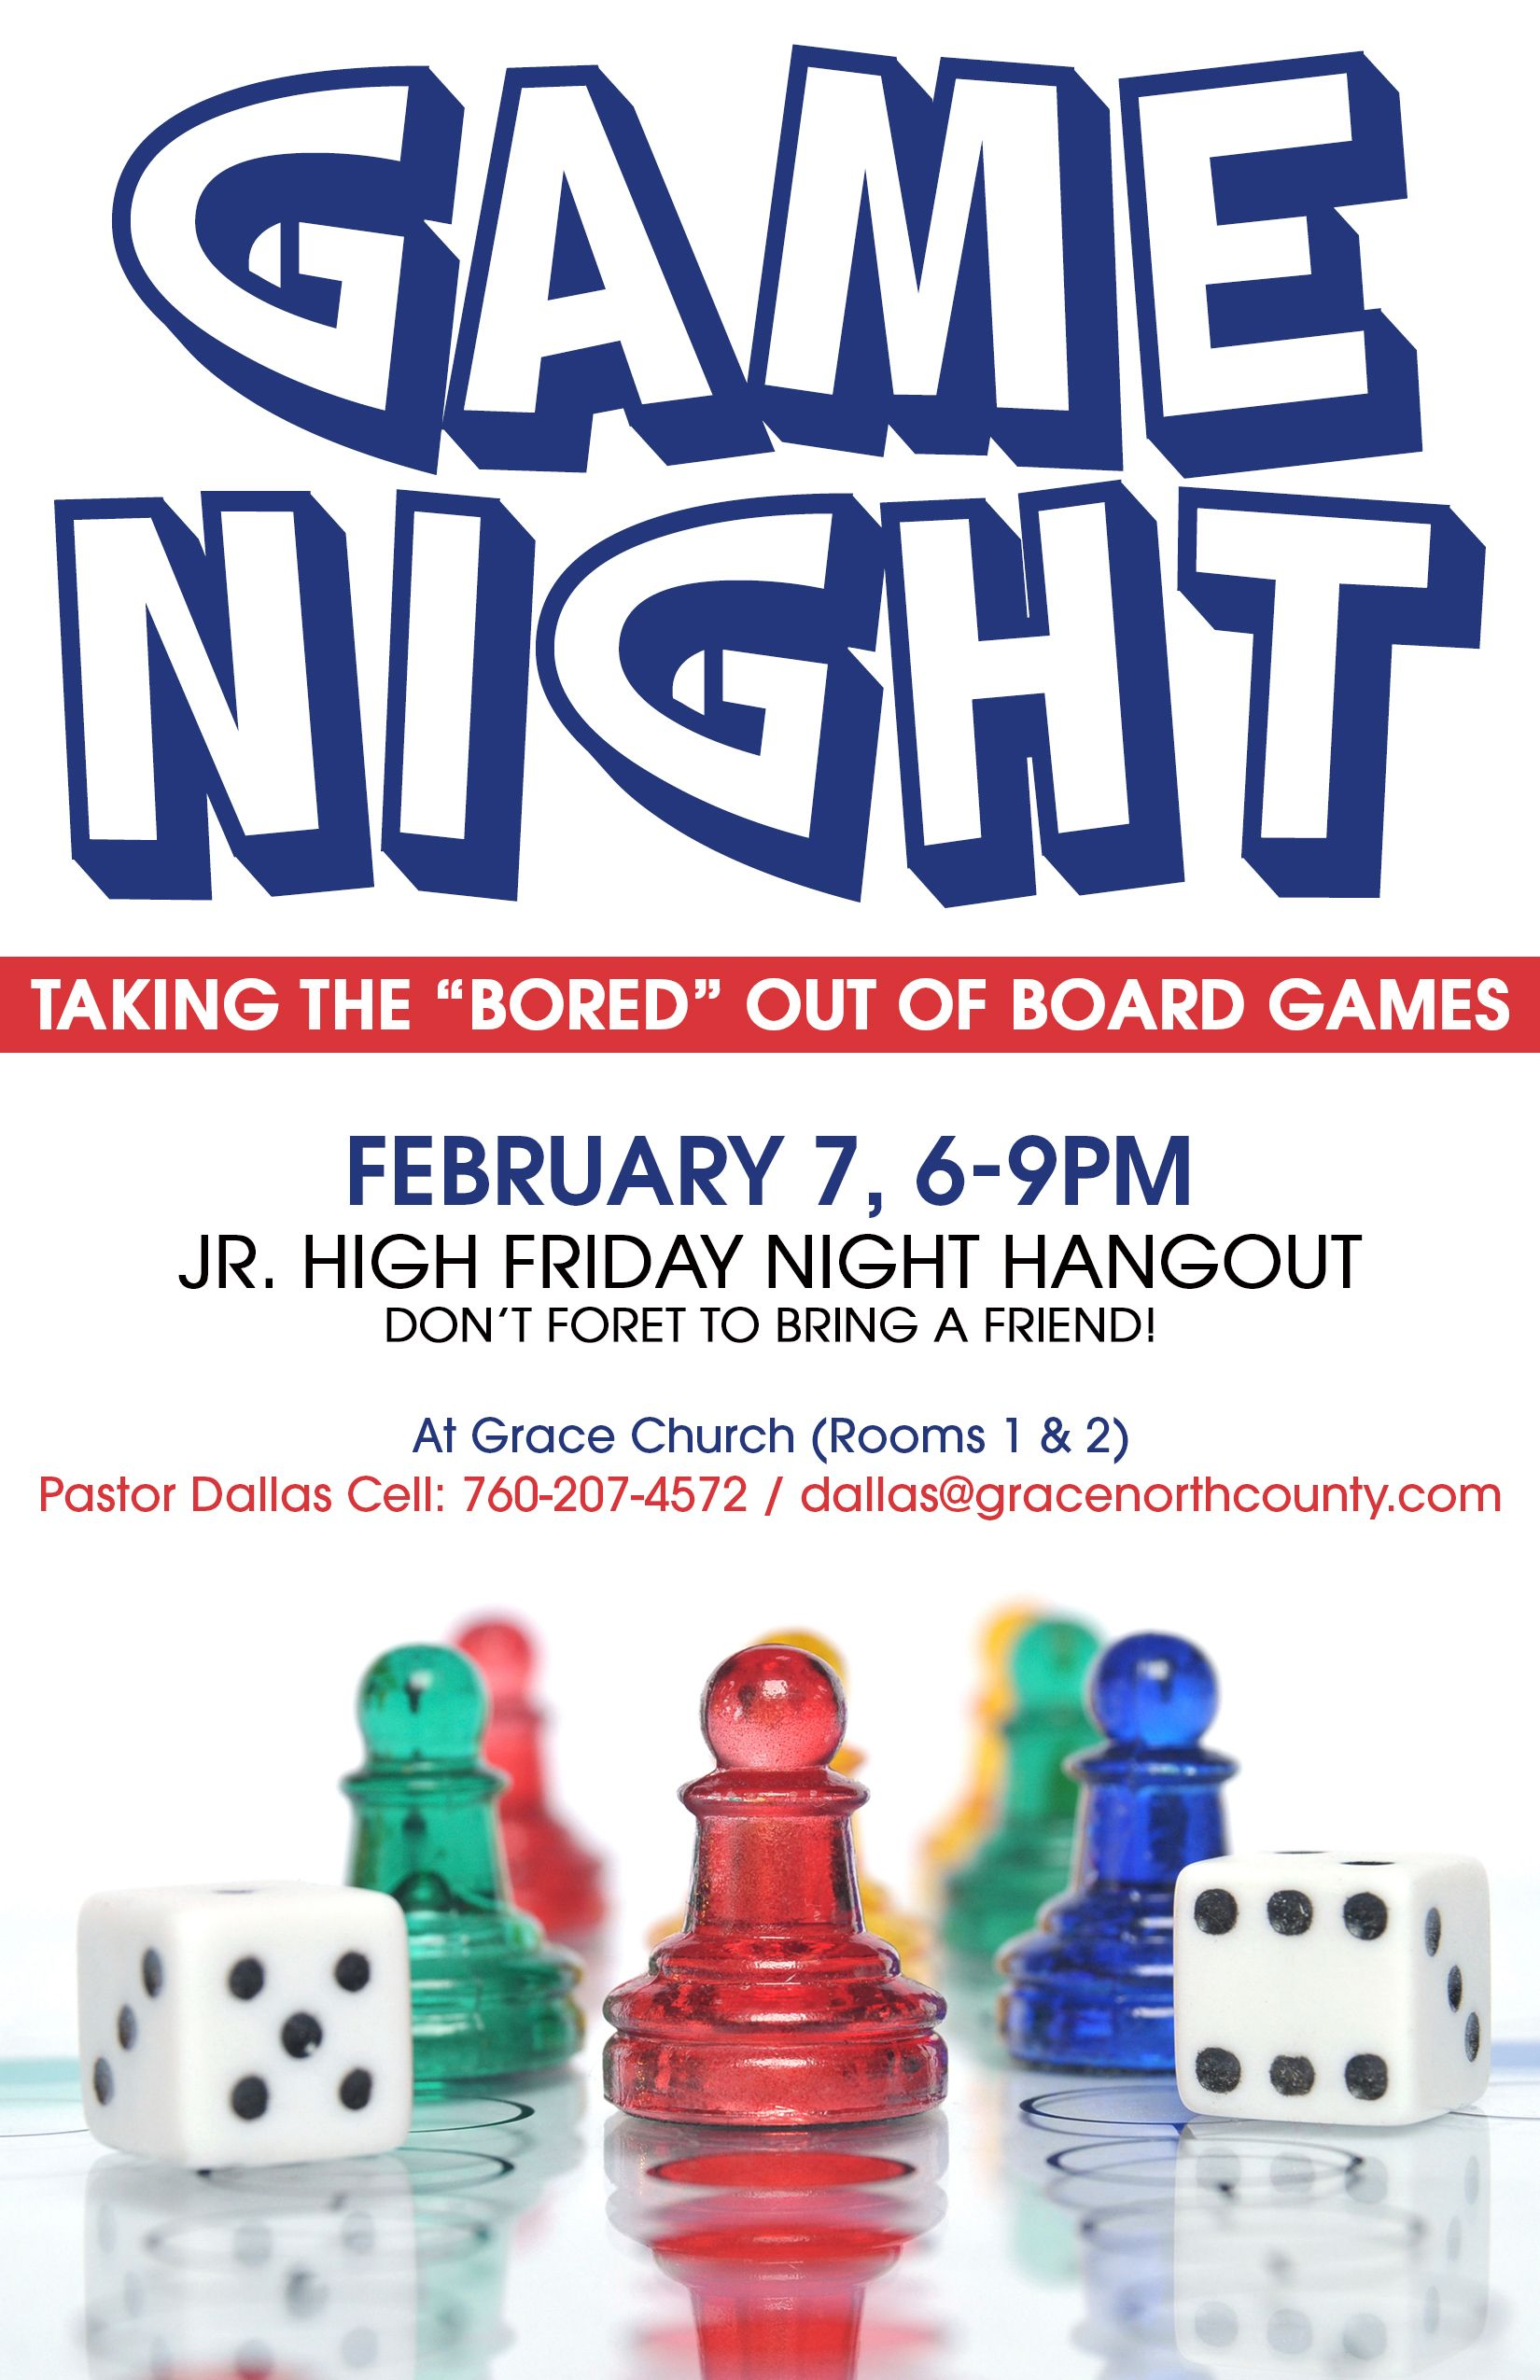 Game Night Flyer Templates Flyer Template Event Flyer Templates Game Night